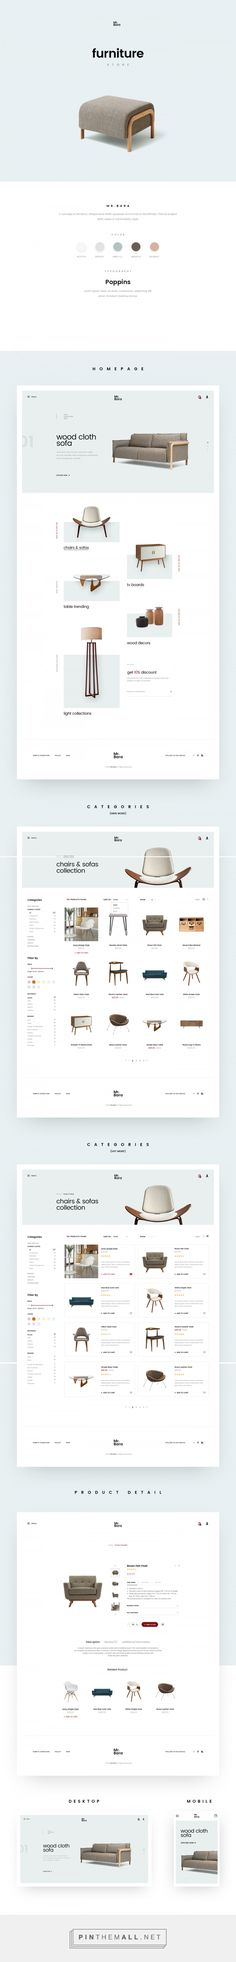 Furniture Site / Web Design / Interaction / UI Design / UX Design / Minimalist / E-Commerce / Interior Design / E-Shop / Clean / Business / Store / Inspiration / Ideas / Layout / Trends / Navigation / Pastel / Beautiful / Modern / Interior / Elegant / White Space